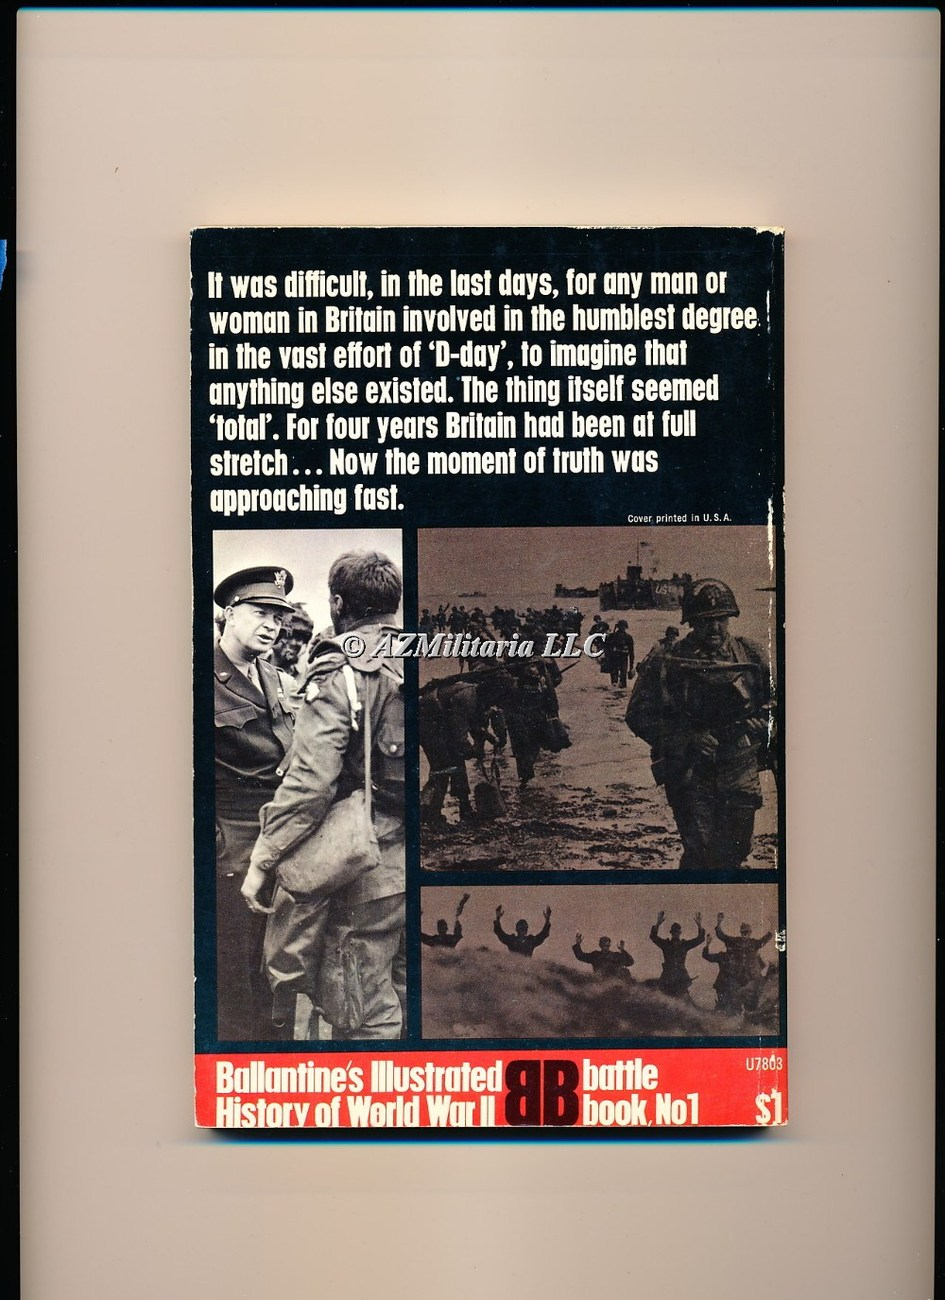 D-Day Spearhead of Invasion (Battle Book No 1)